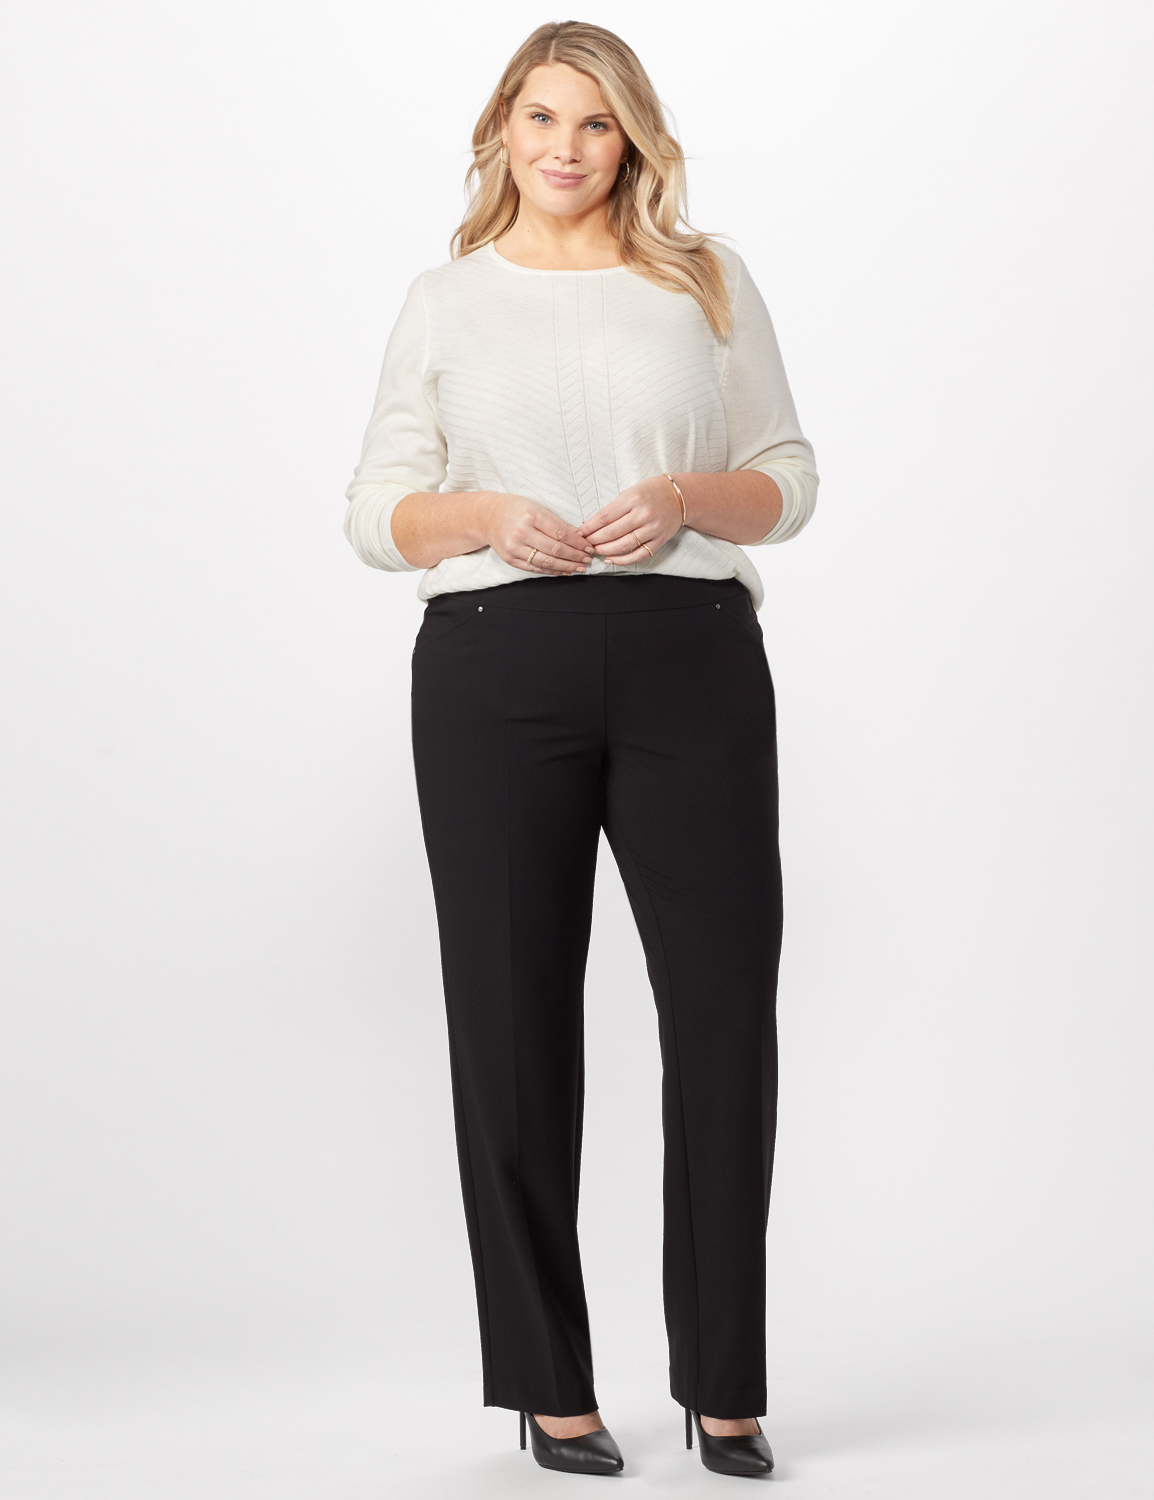 Roz & Ali Secret Agent Tummy Control Pants Cateye Rivet - Tall Length - Plus -Black - Front